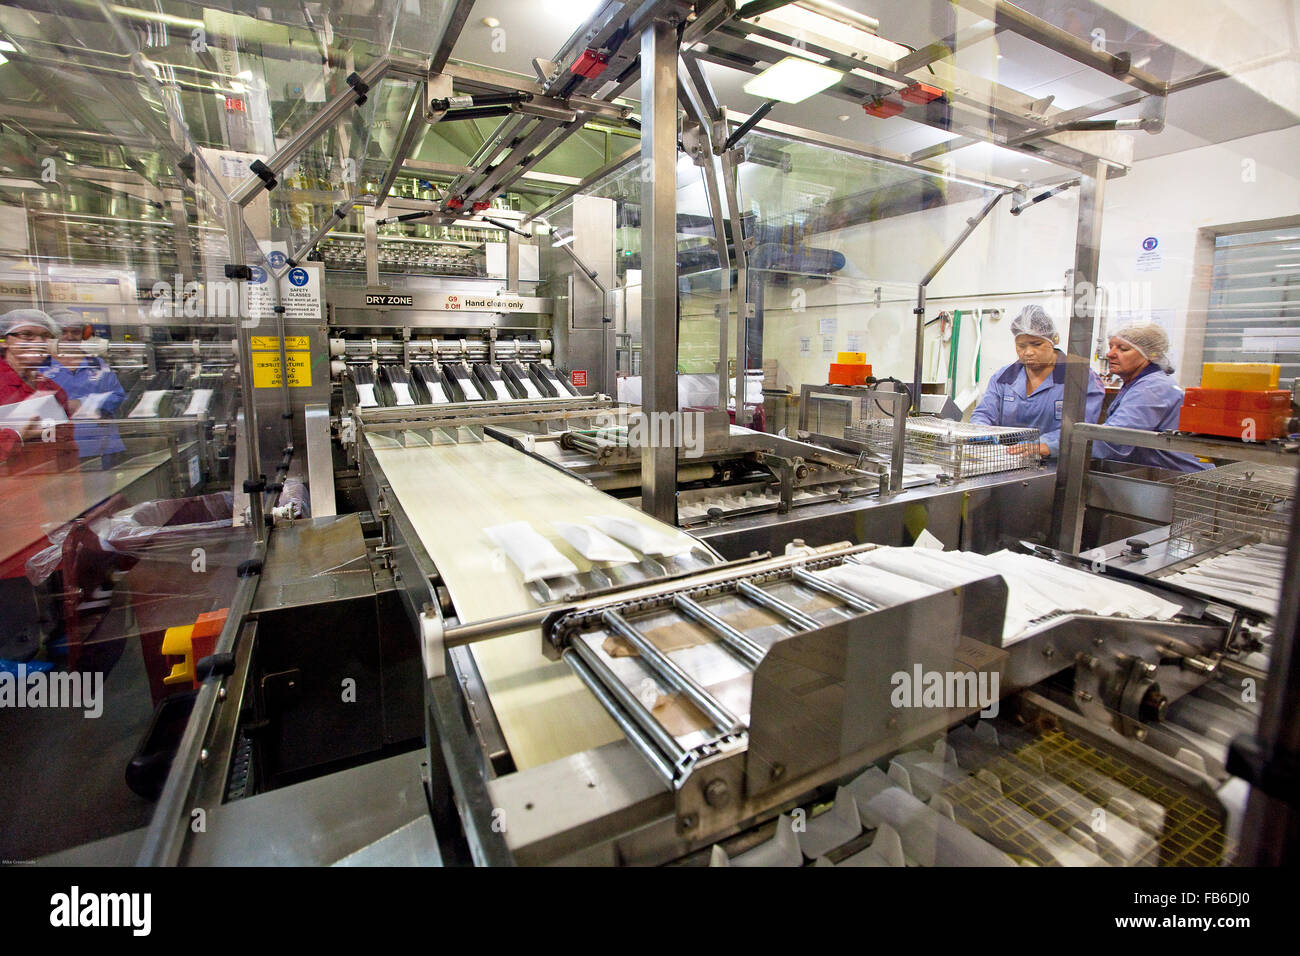 Production line at Norco Ice cream factory, Lismore, NSW, Australia - Stock Image